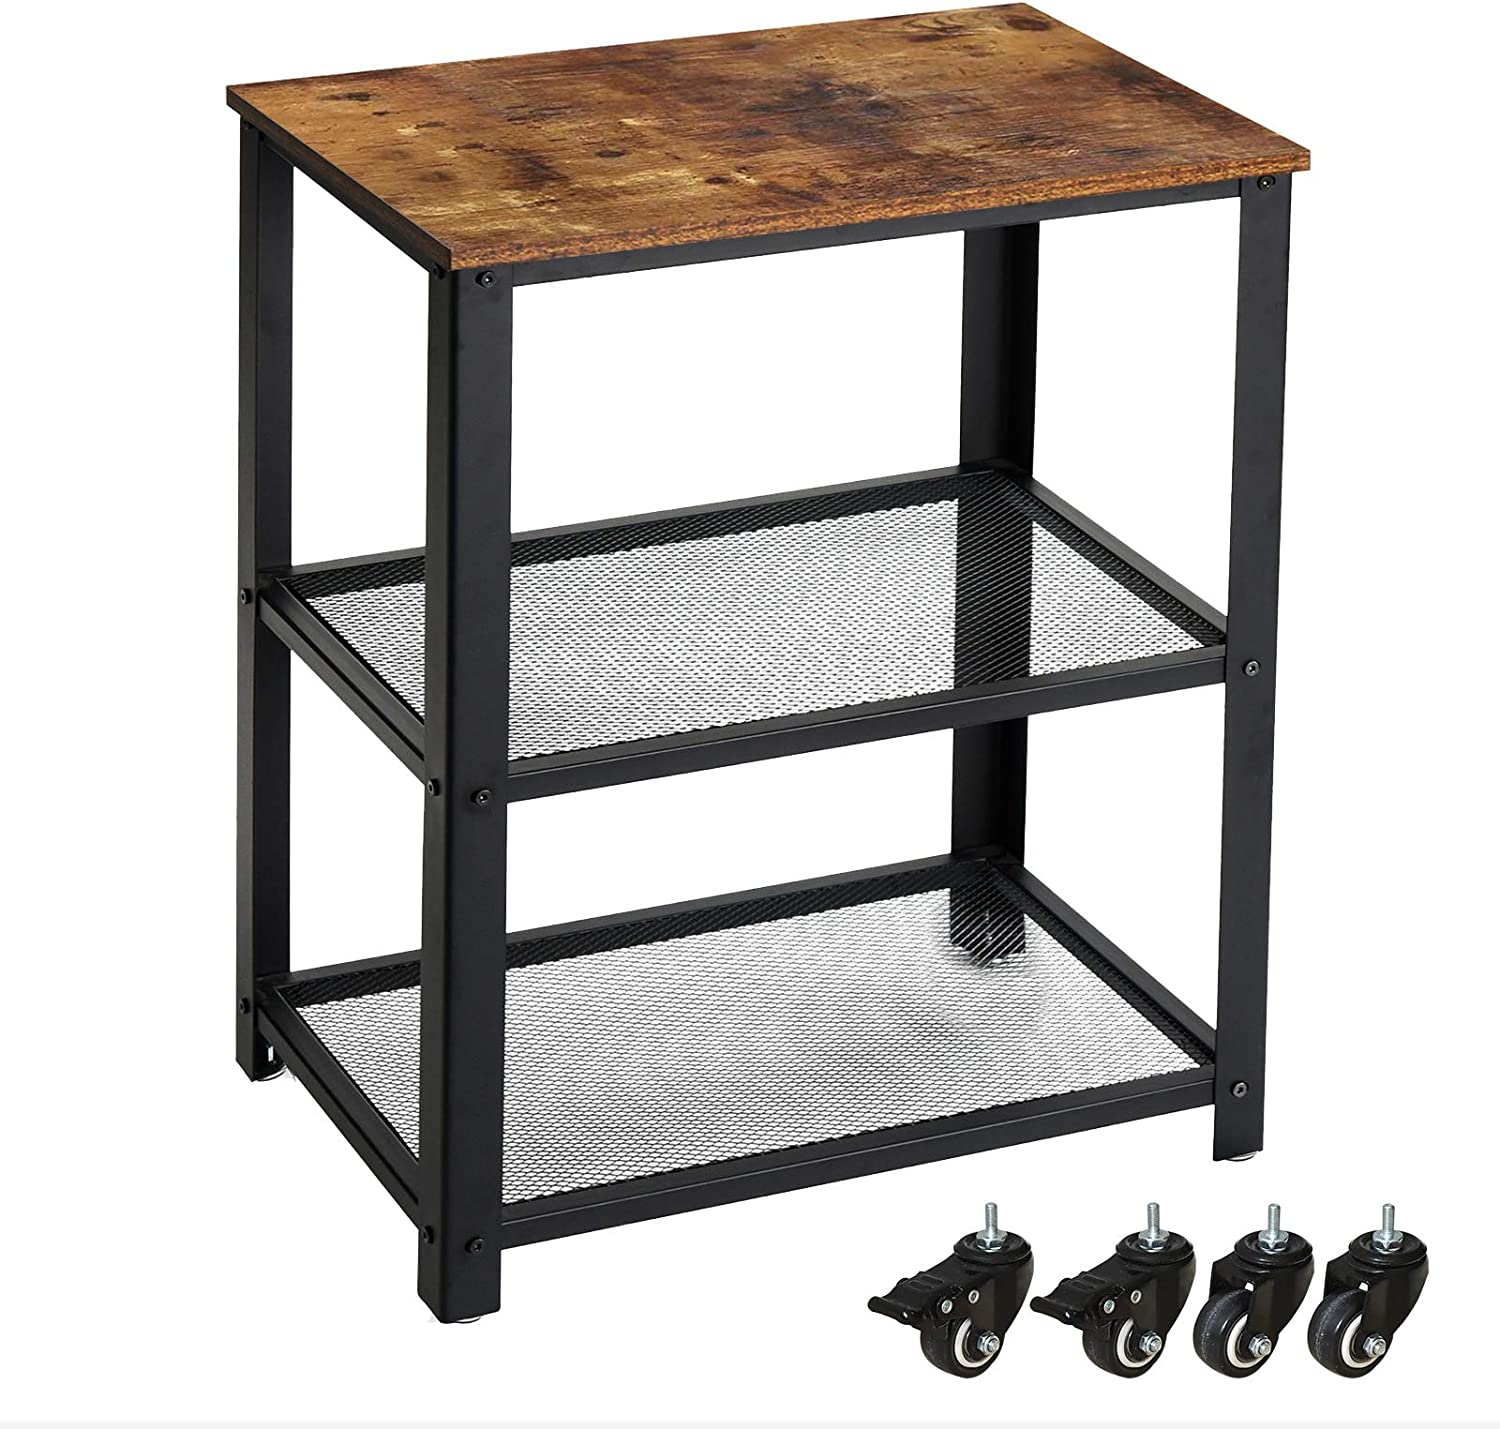 IBUYKE Bar Cart, Kitchen Serving Cart, 3-Tier Kitchen Utility Cart on Wheels with Storage, Rustic Brown and Black GL-TMJ011H